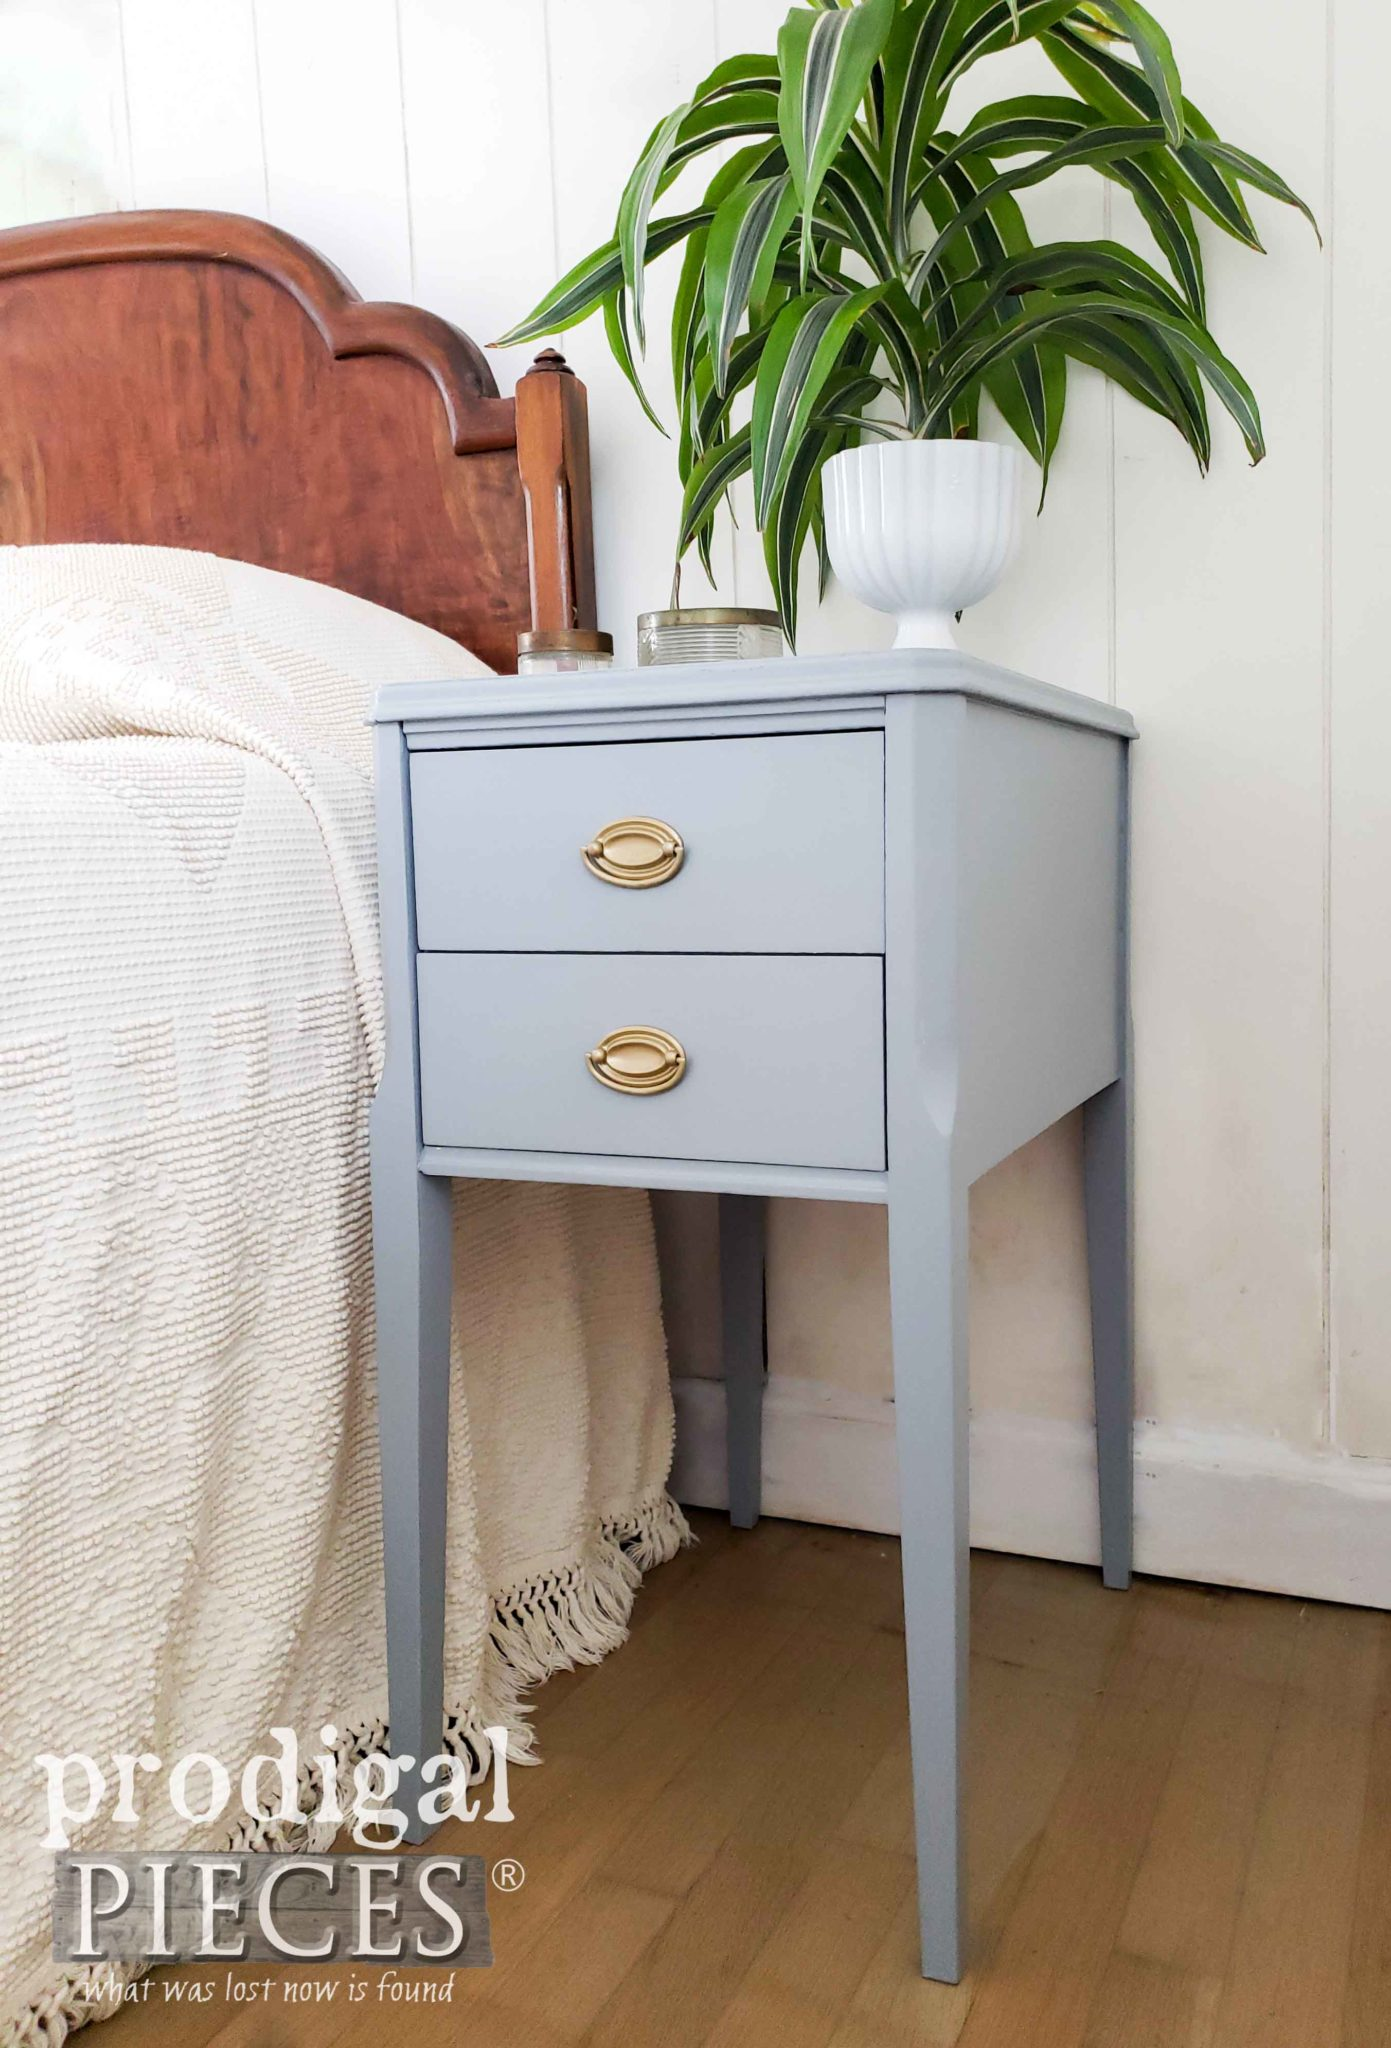 Vintage Blue Gray Nightstand Found & Restored by Larissa of Prodigal Pieces | prodigalpieces.com #prodigalpieces #furniture #diy #vintage #home #homedecor